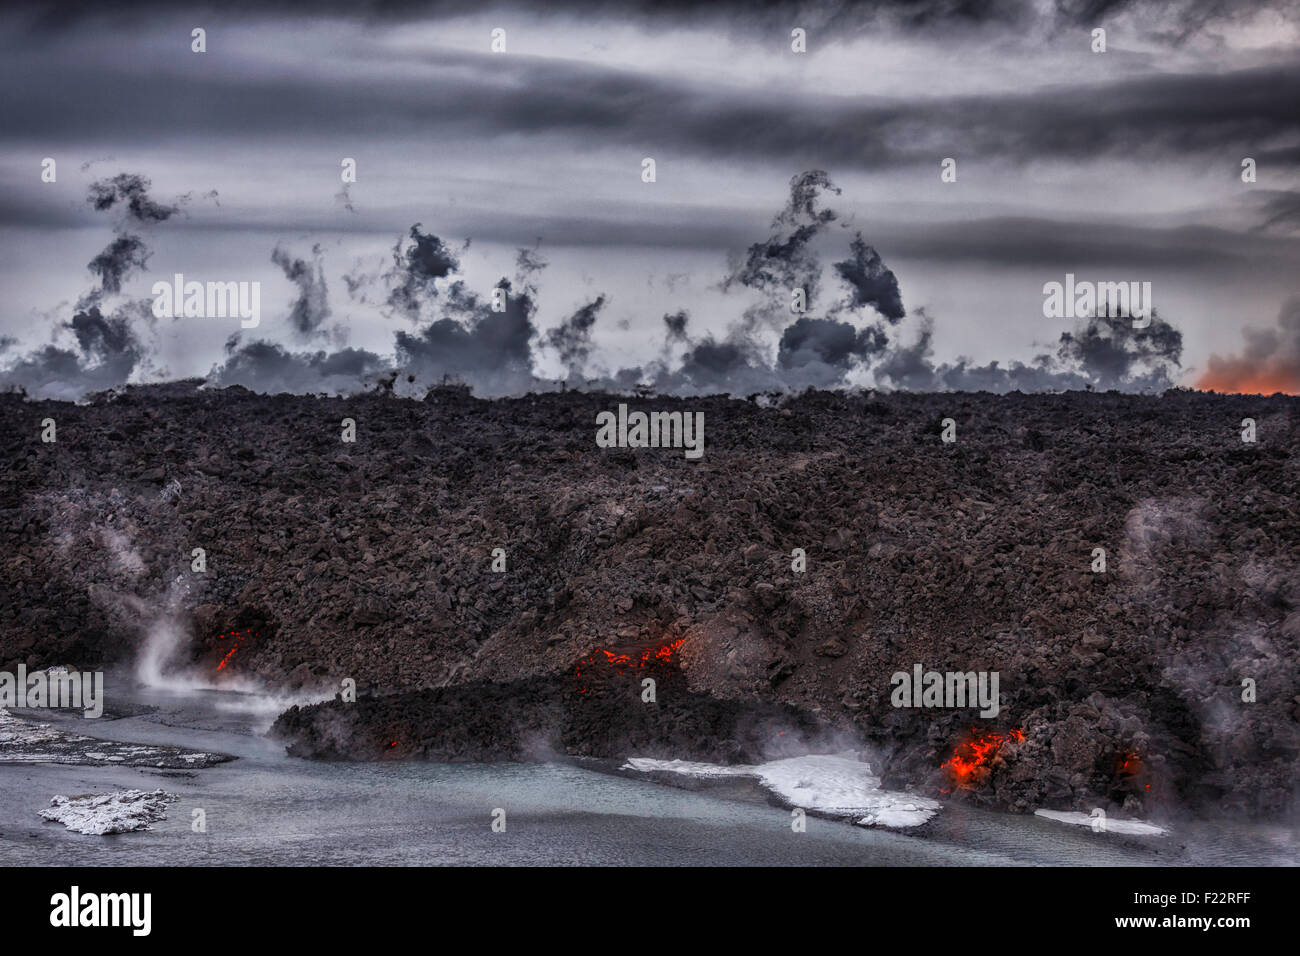 Hot lava steaming. Eruption site at Holuhraun near Bardarbunga Volcano, Iceland. August 29, 2014 a fissure eruption - Stock Image